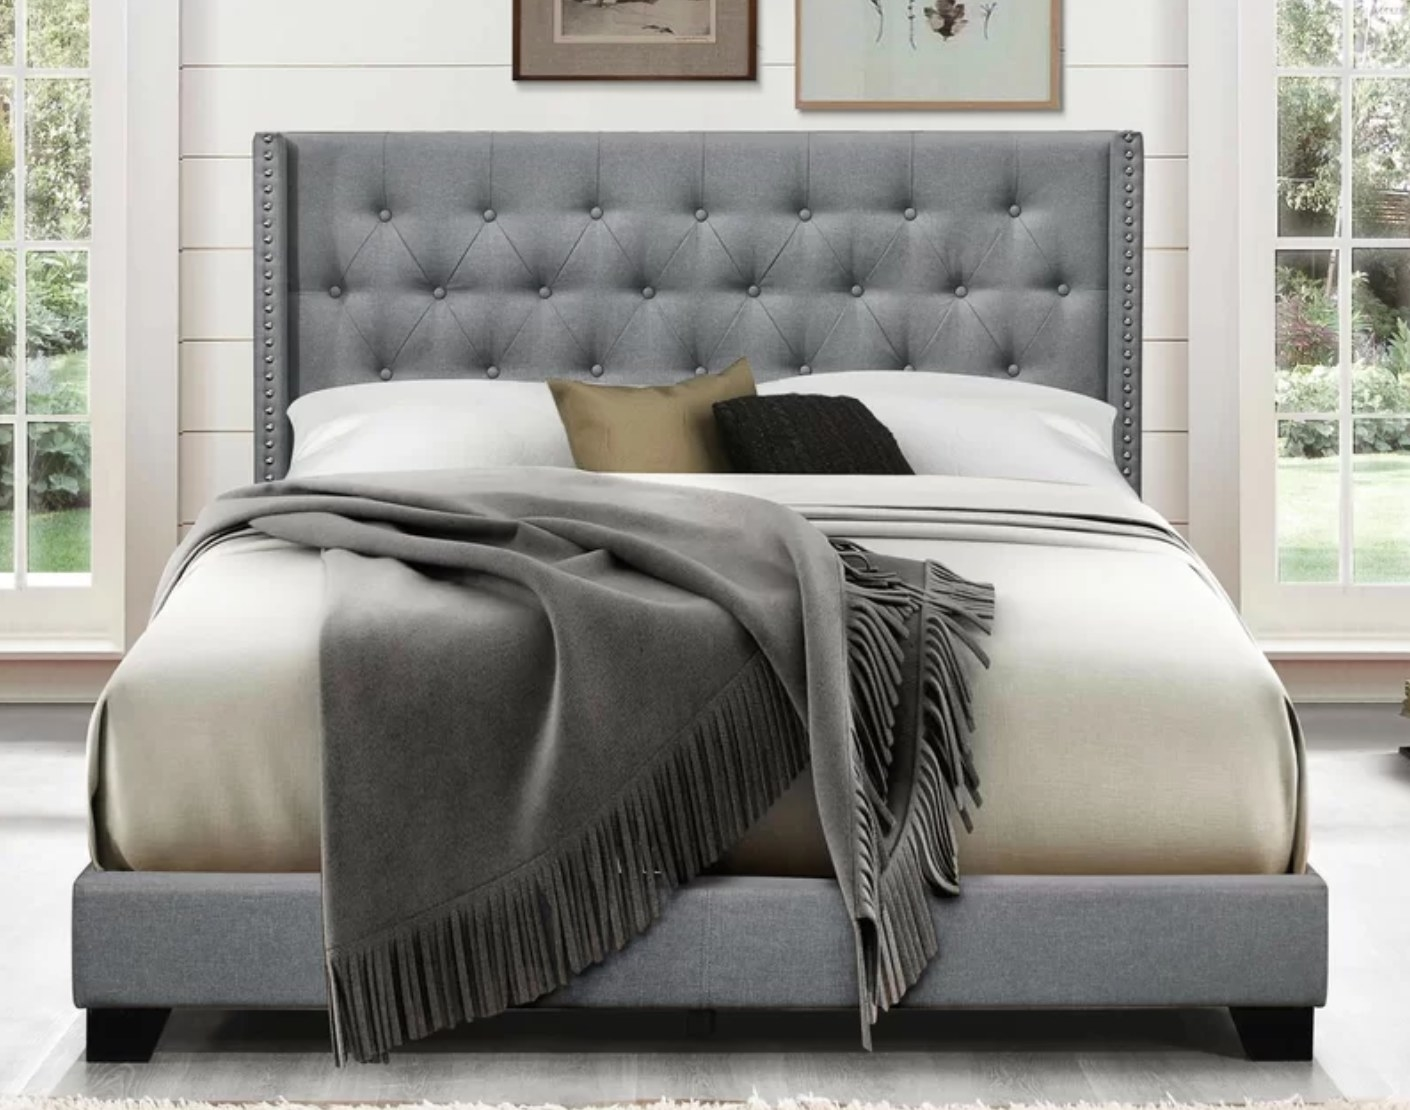 The upholstered low profile bed in gray